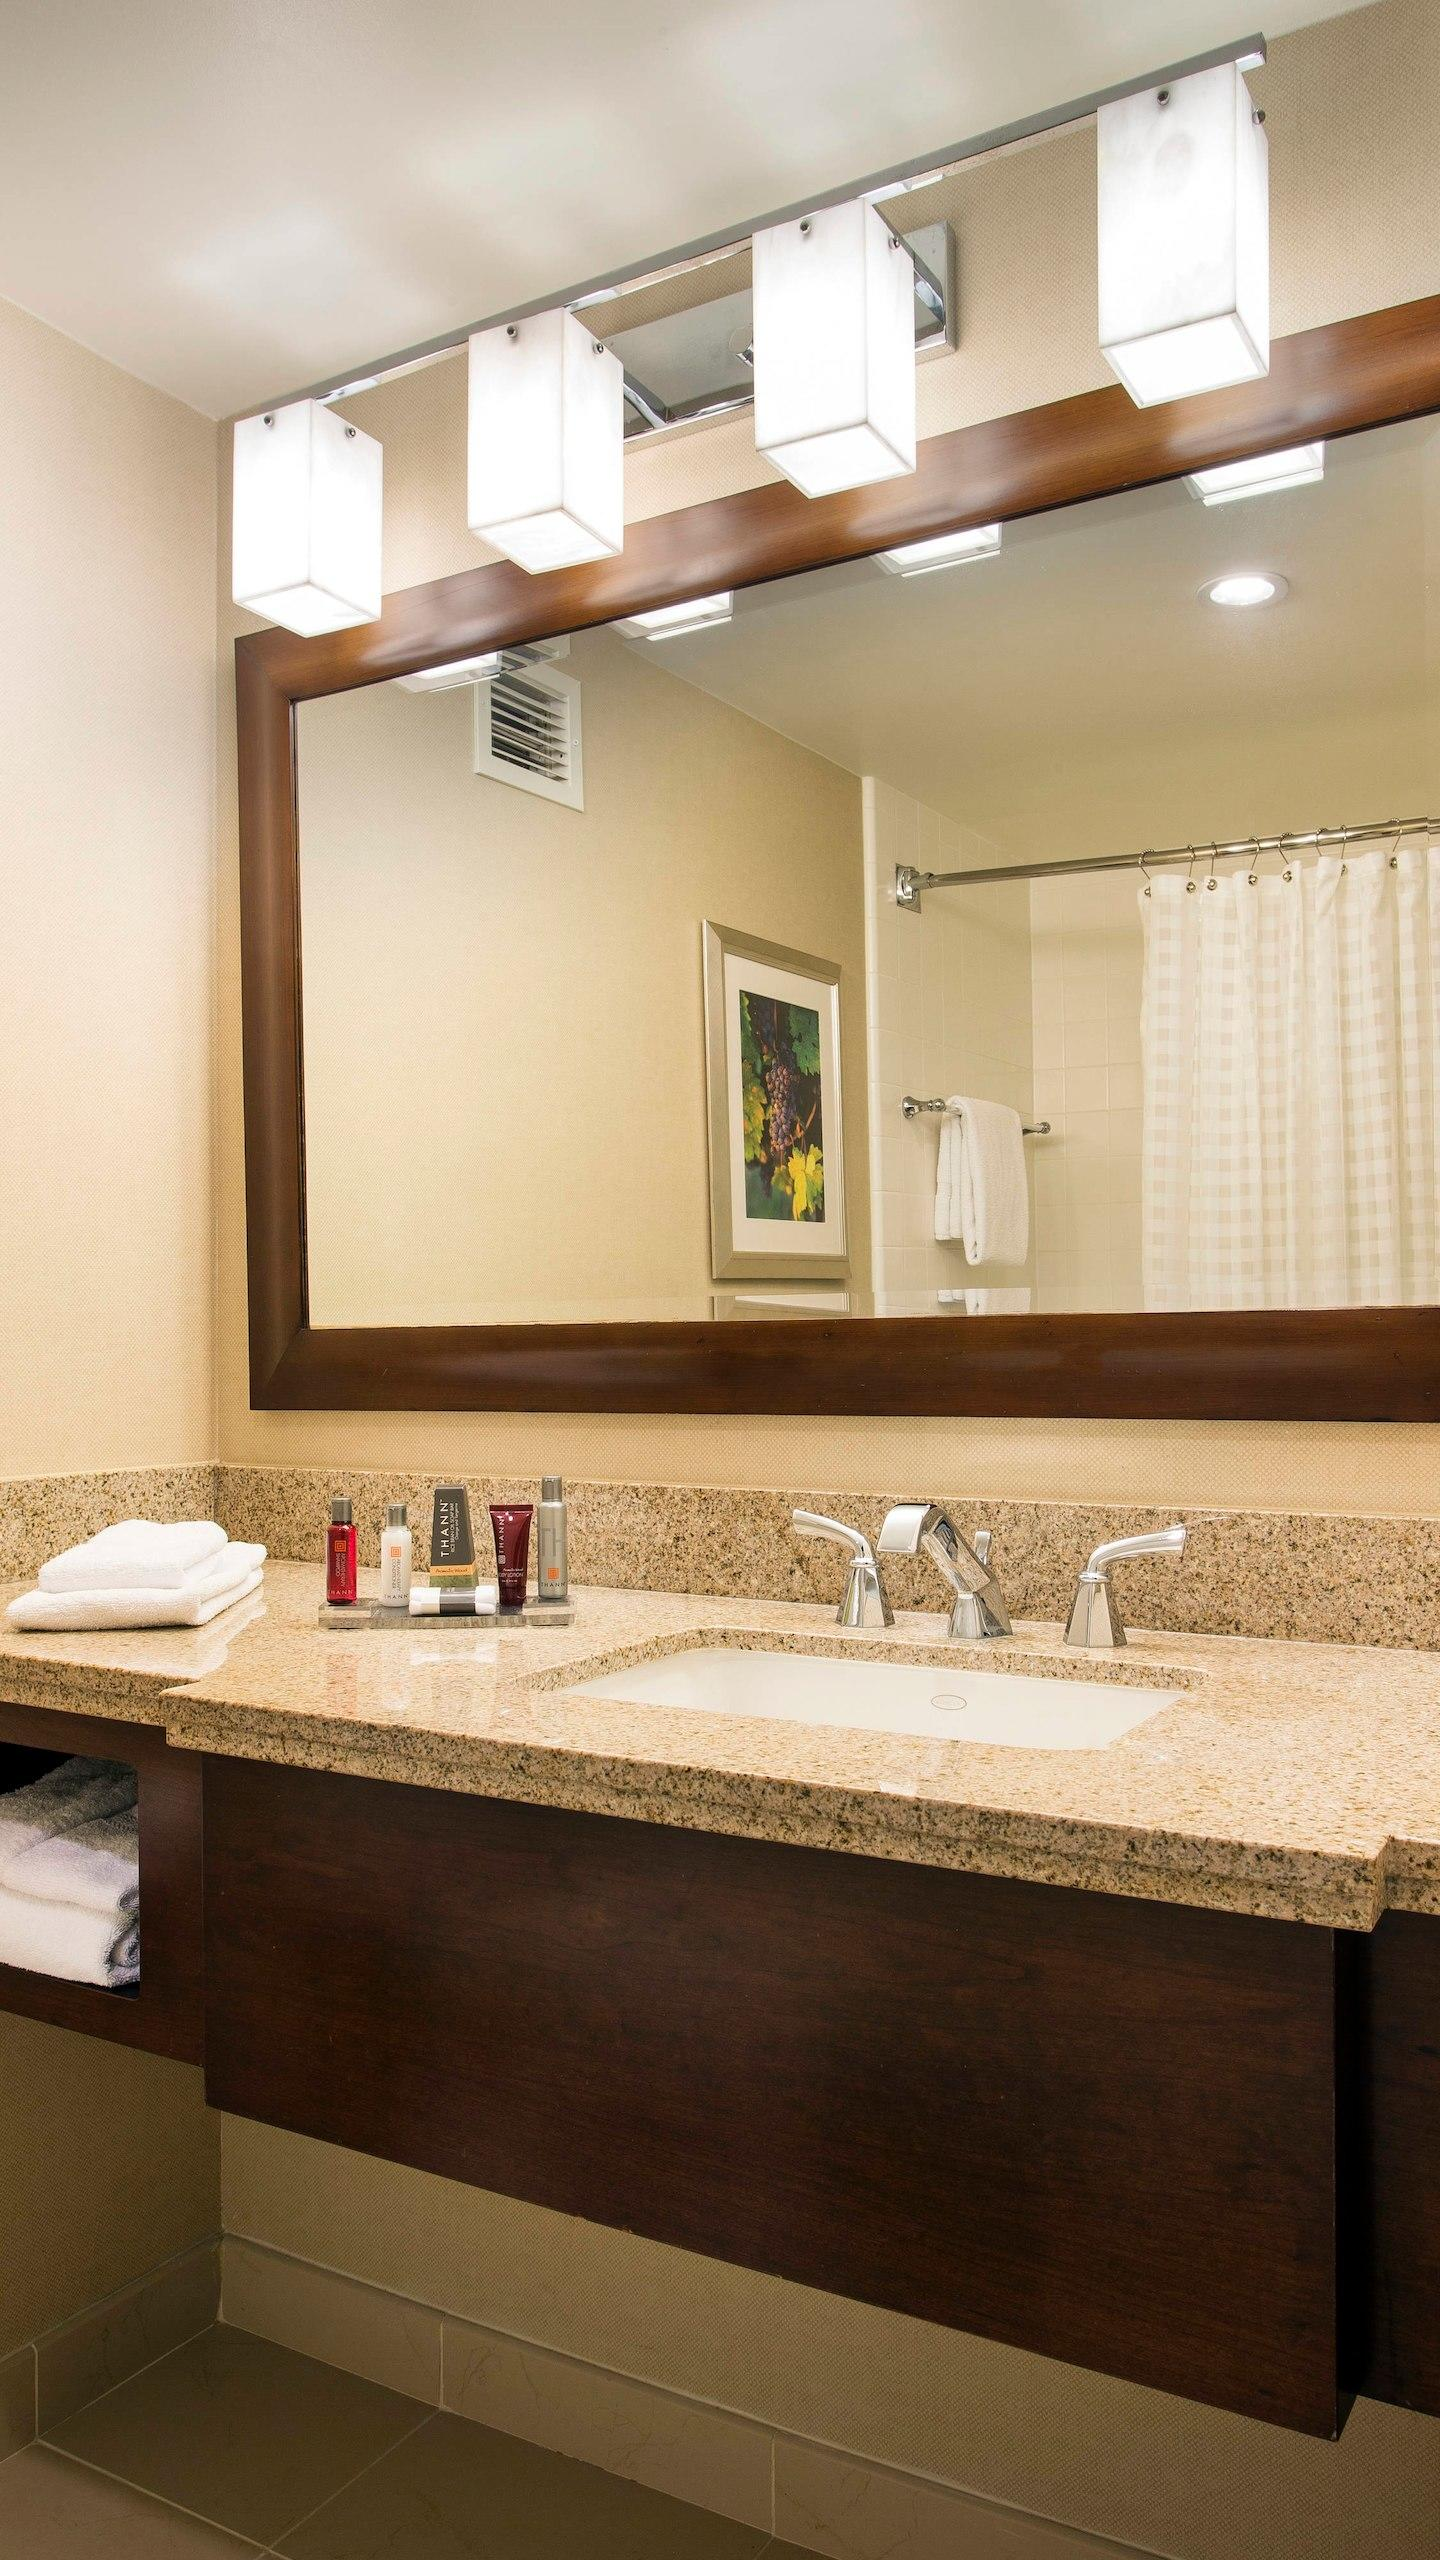 San Ramon Marriott image 9